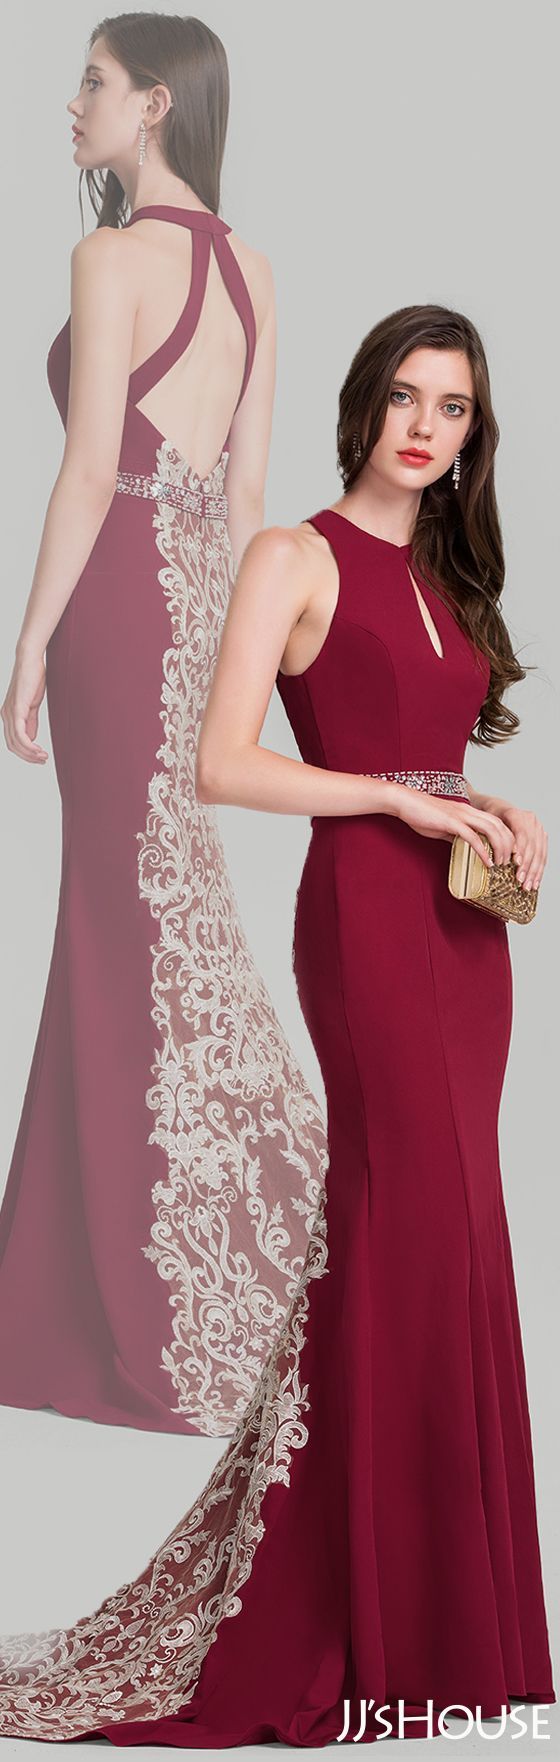 So sexy and chic and the back design perfect the evening dress! #JJsHouse #Evening